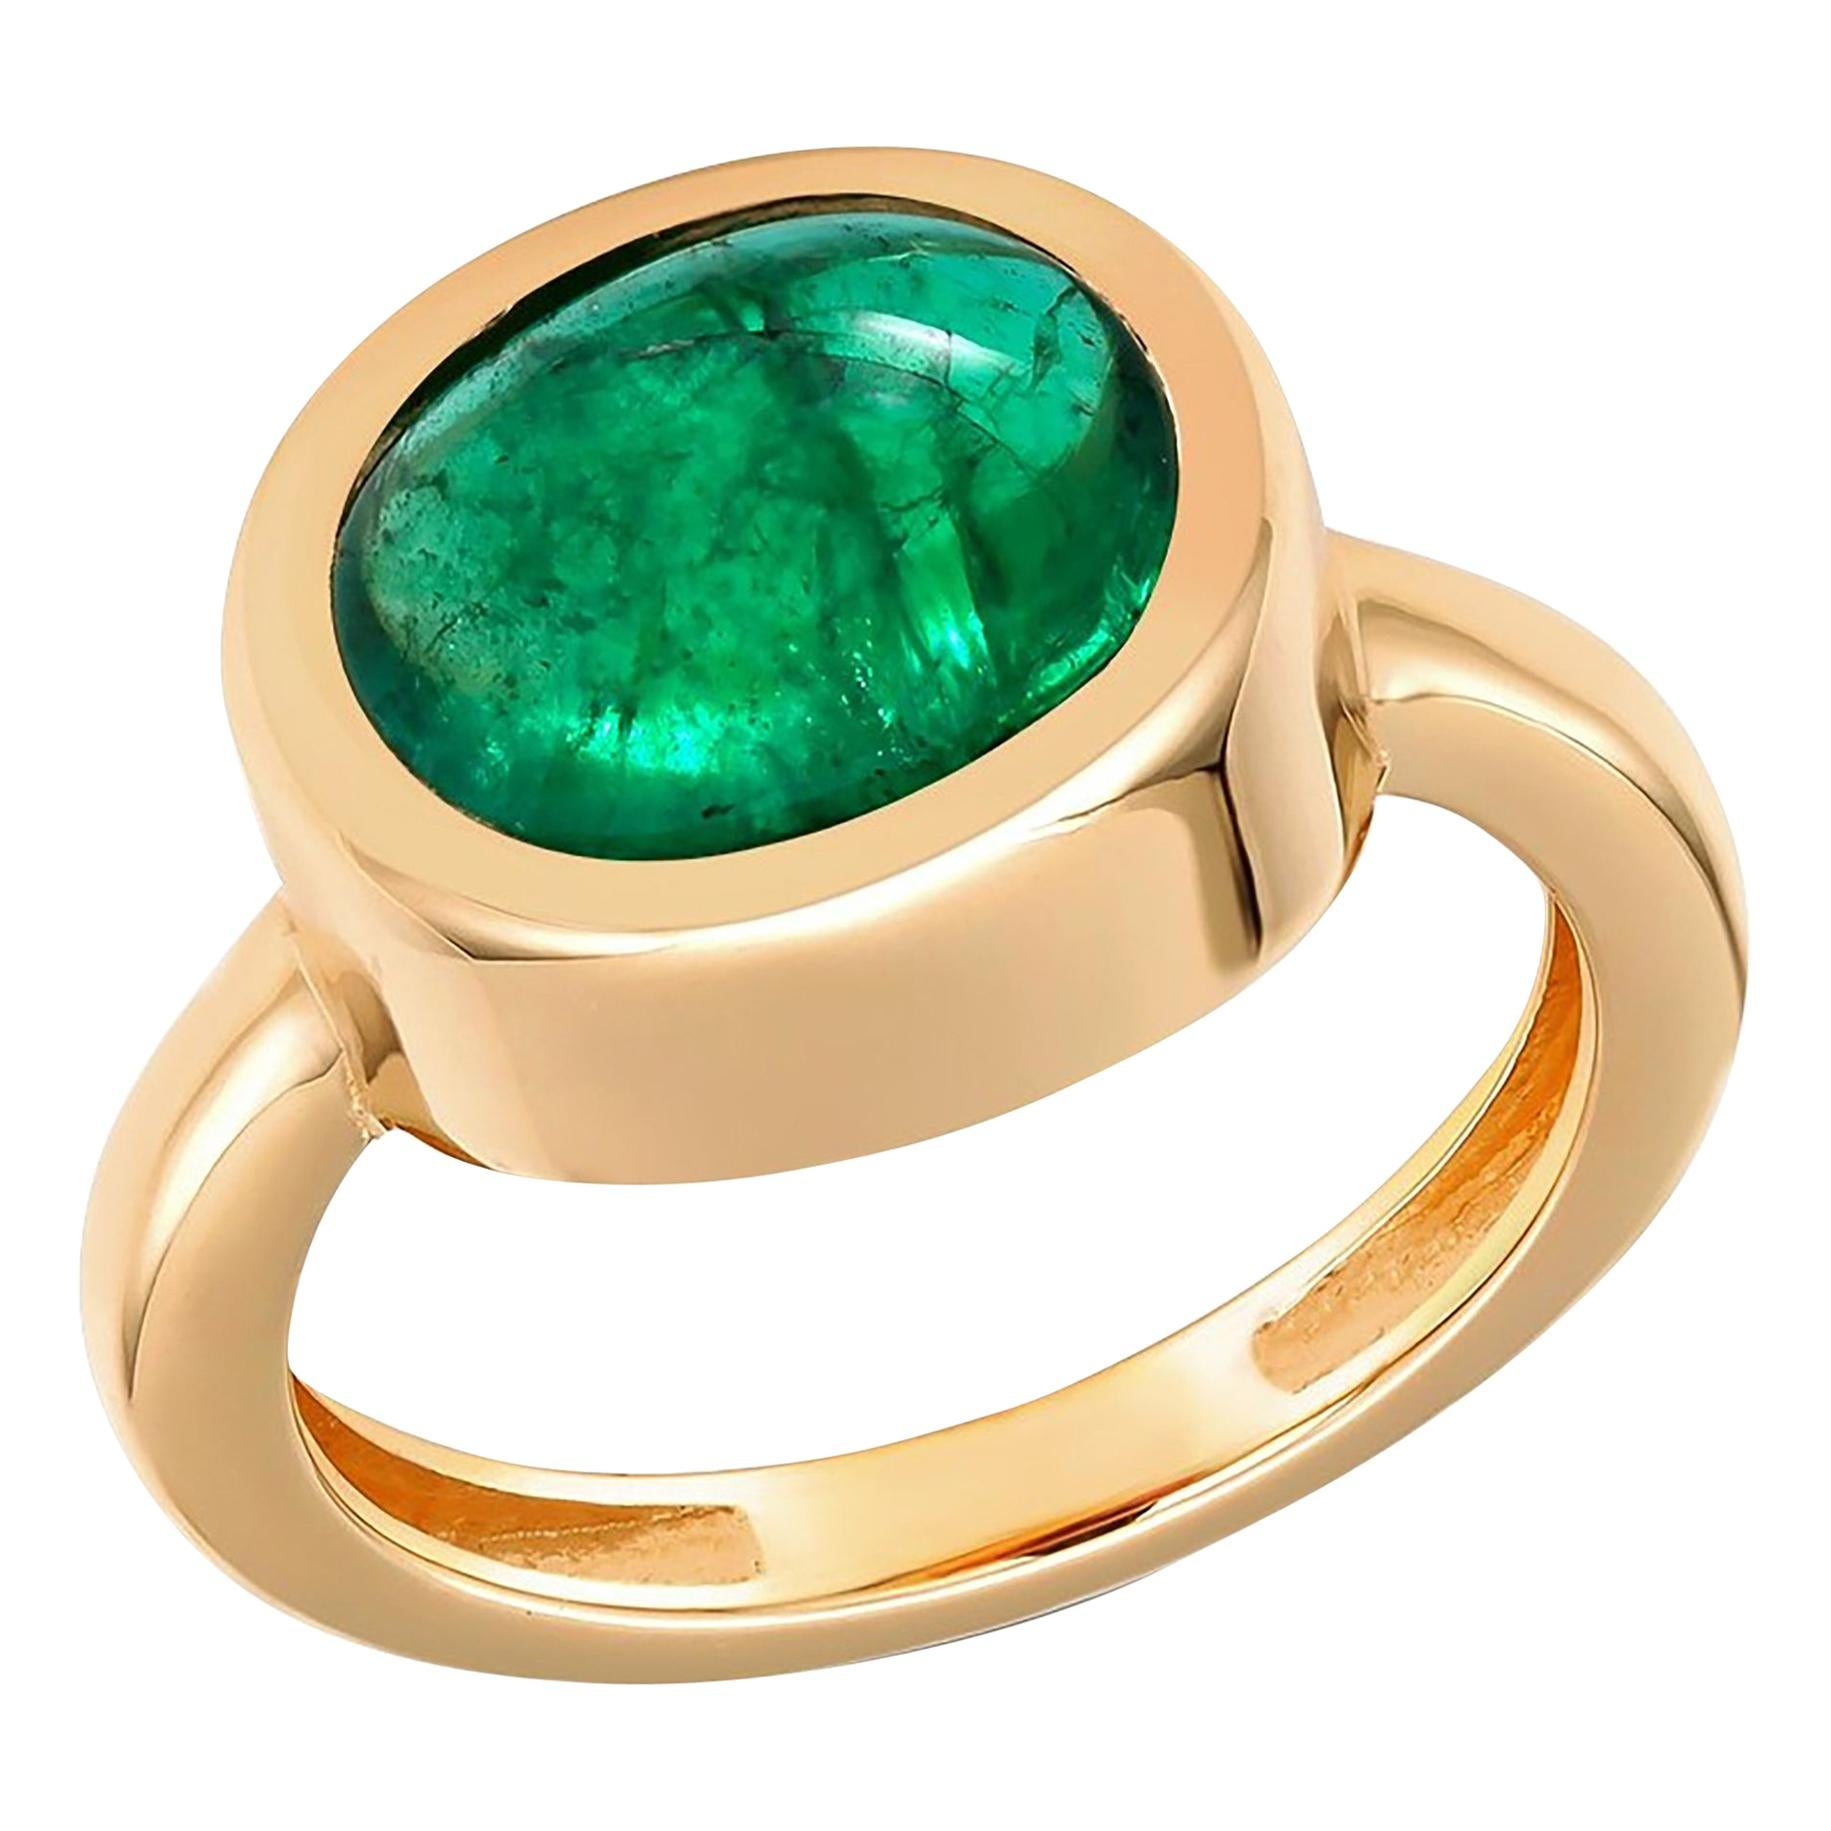 Cabochon Emerald High Dome Yellow Gold Cocktail Solitaire Ring